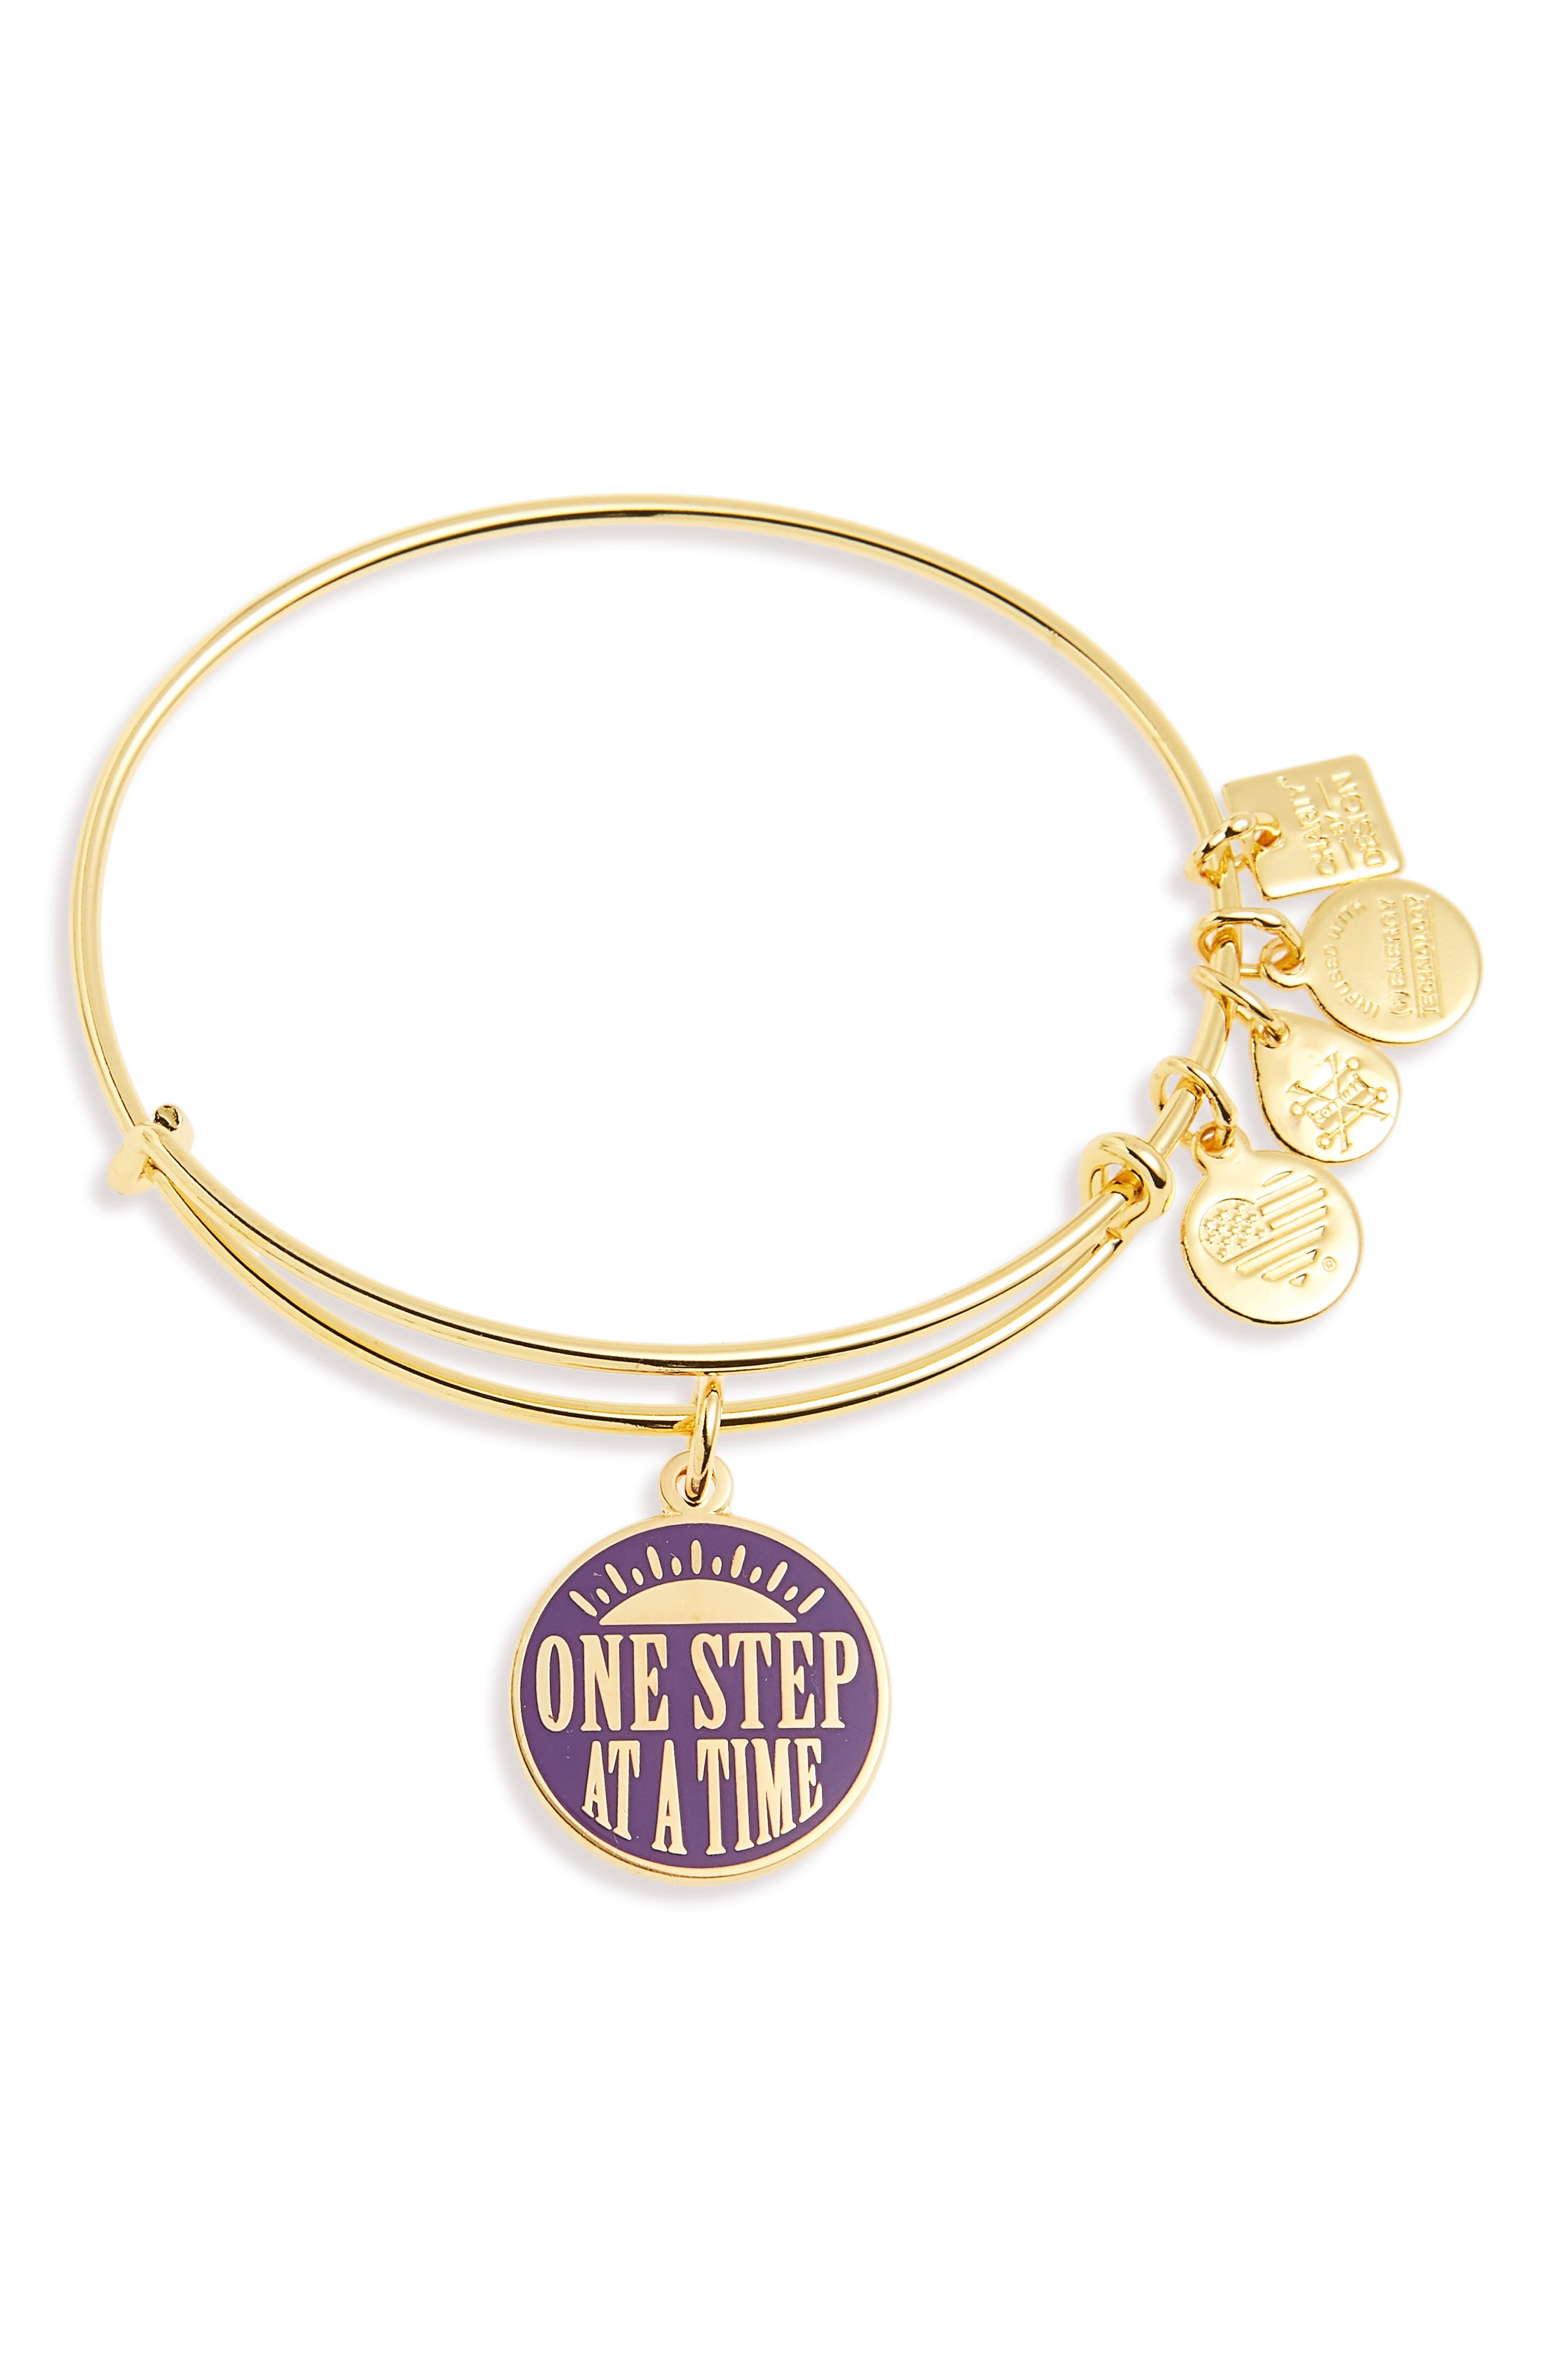 Kindred One Step at a Time Bangle,                             Main thumbnail 1, color,                             Gold